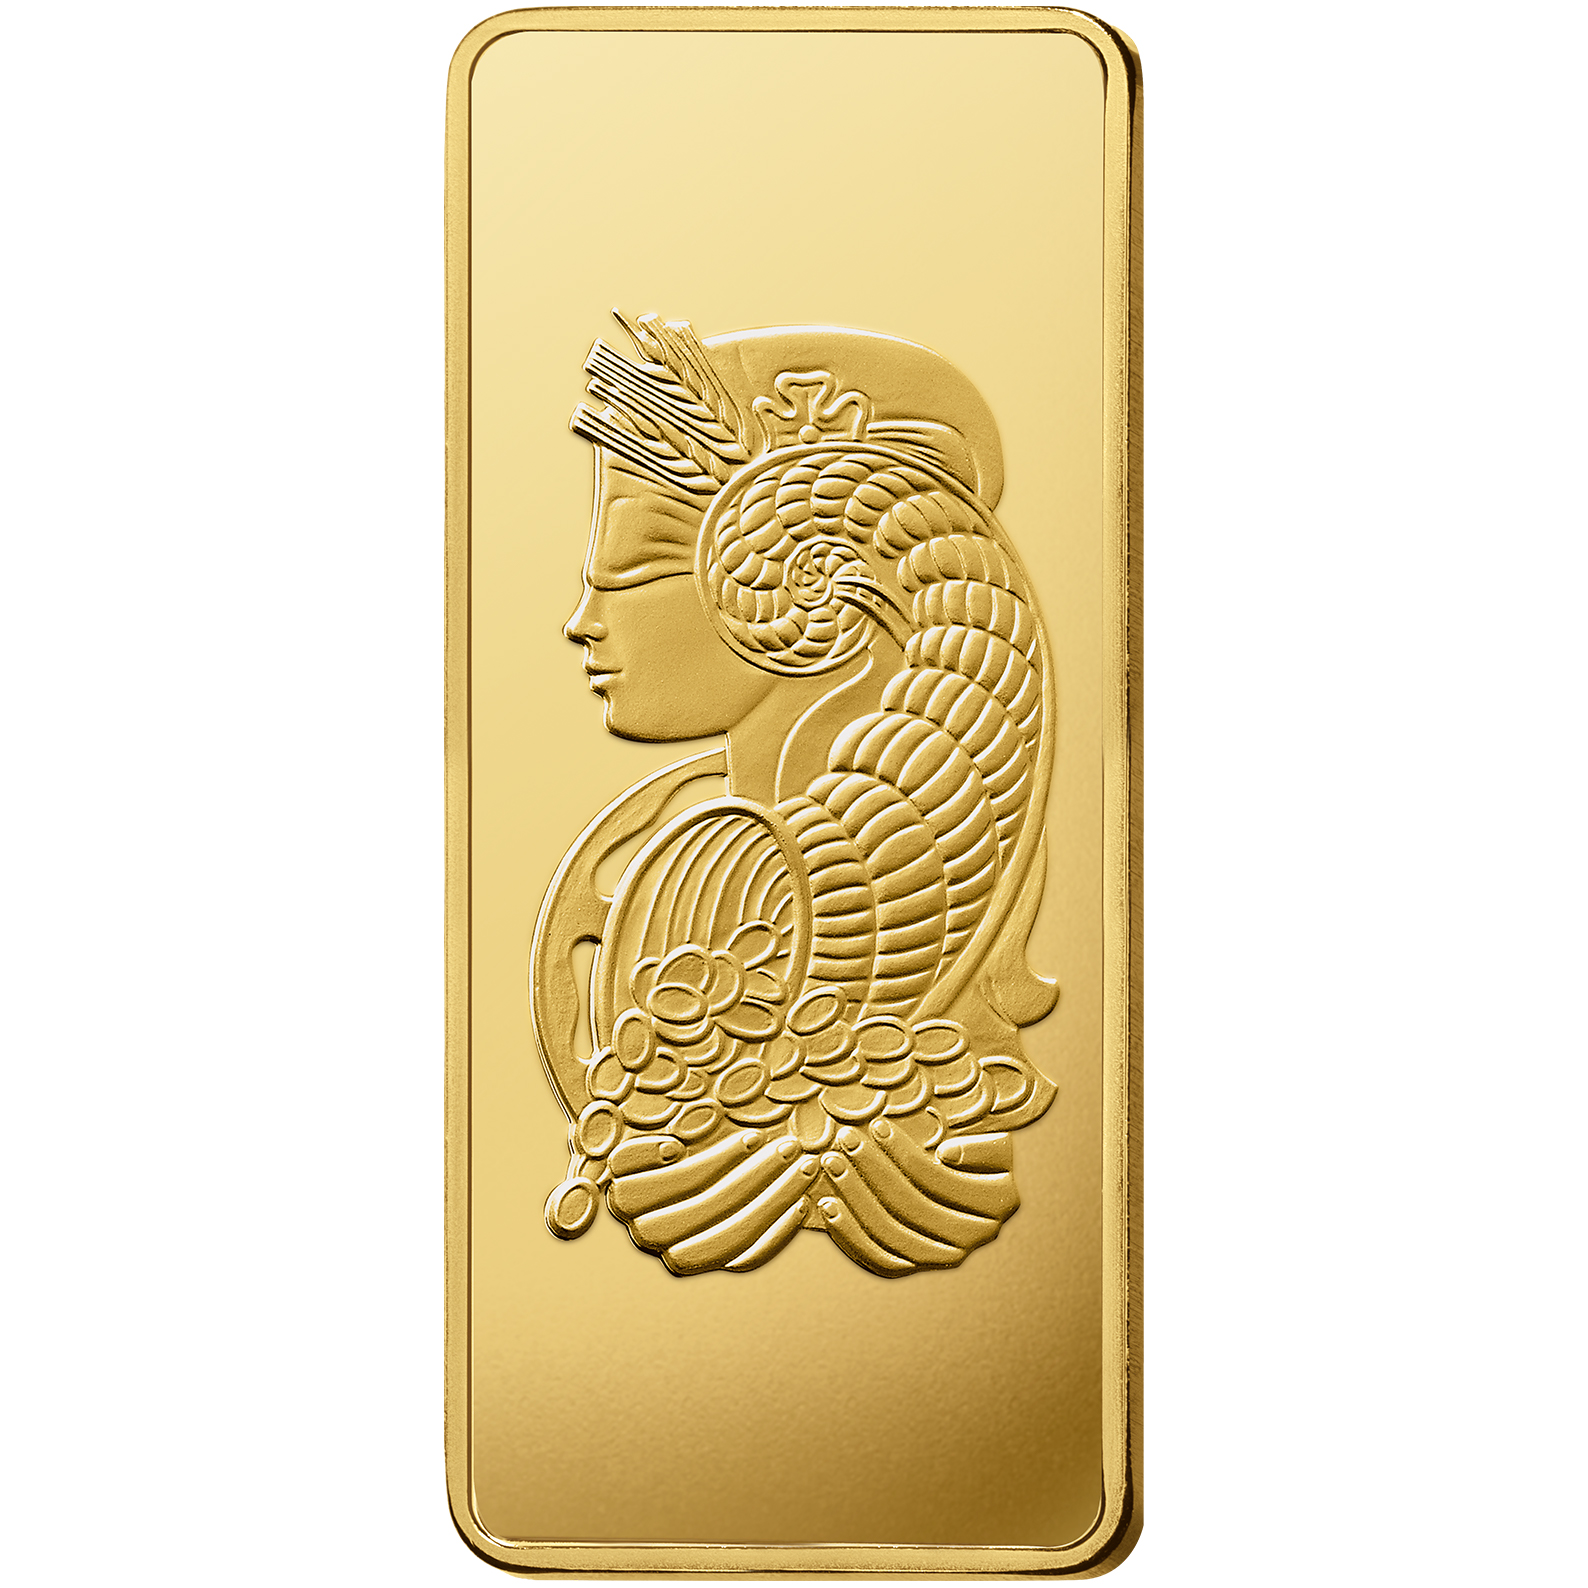 1 kilo Fine Gold Bar 999.9 - PAMP Suisse Lady Fortuna